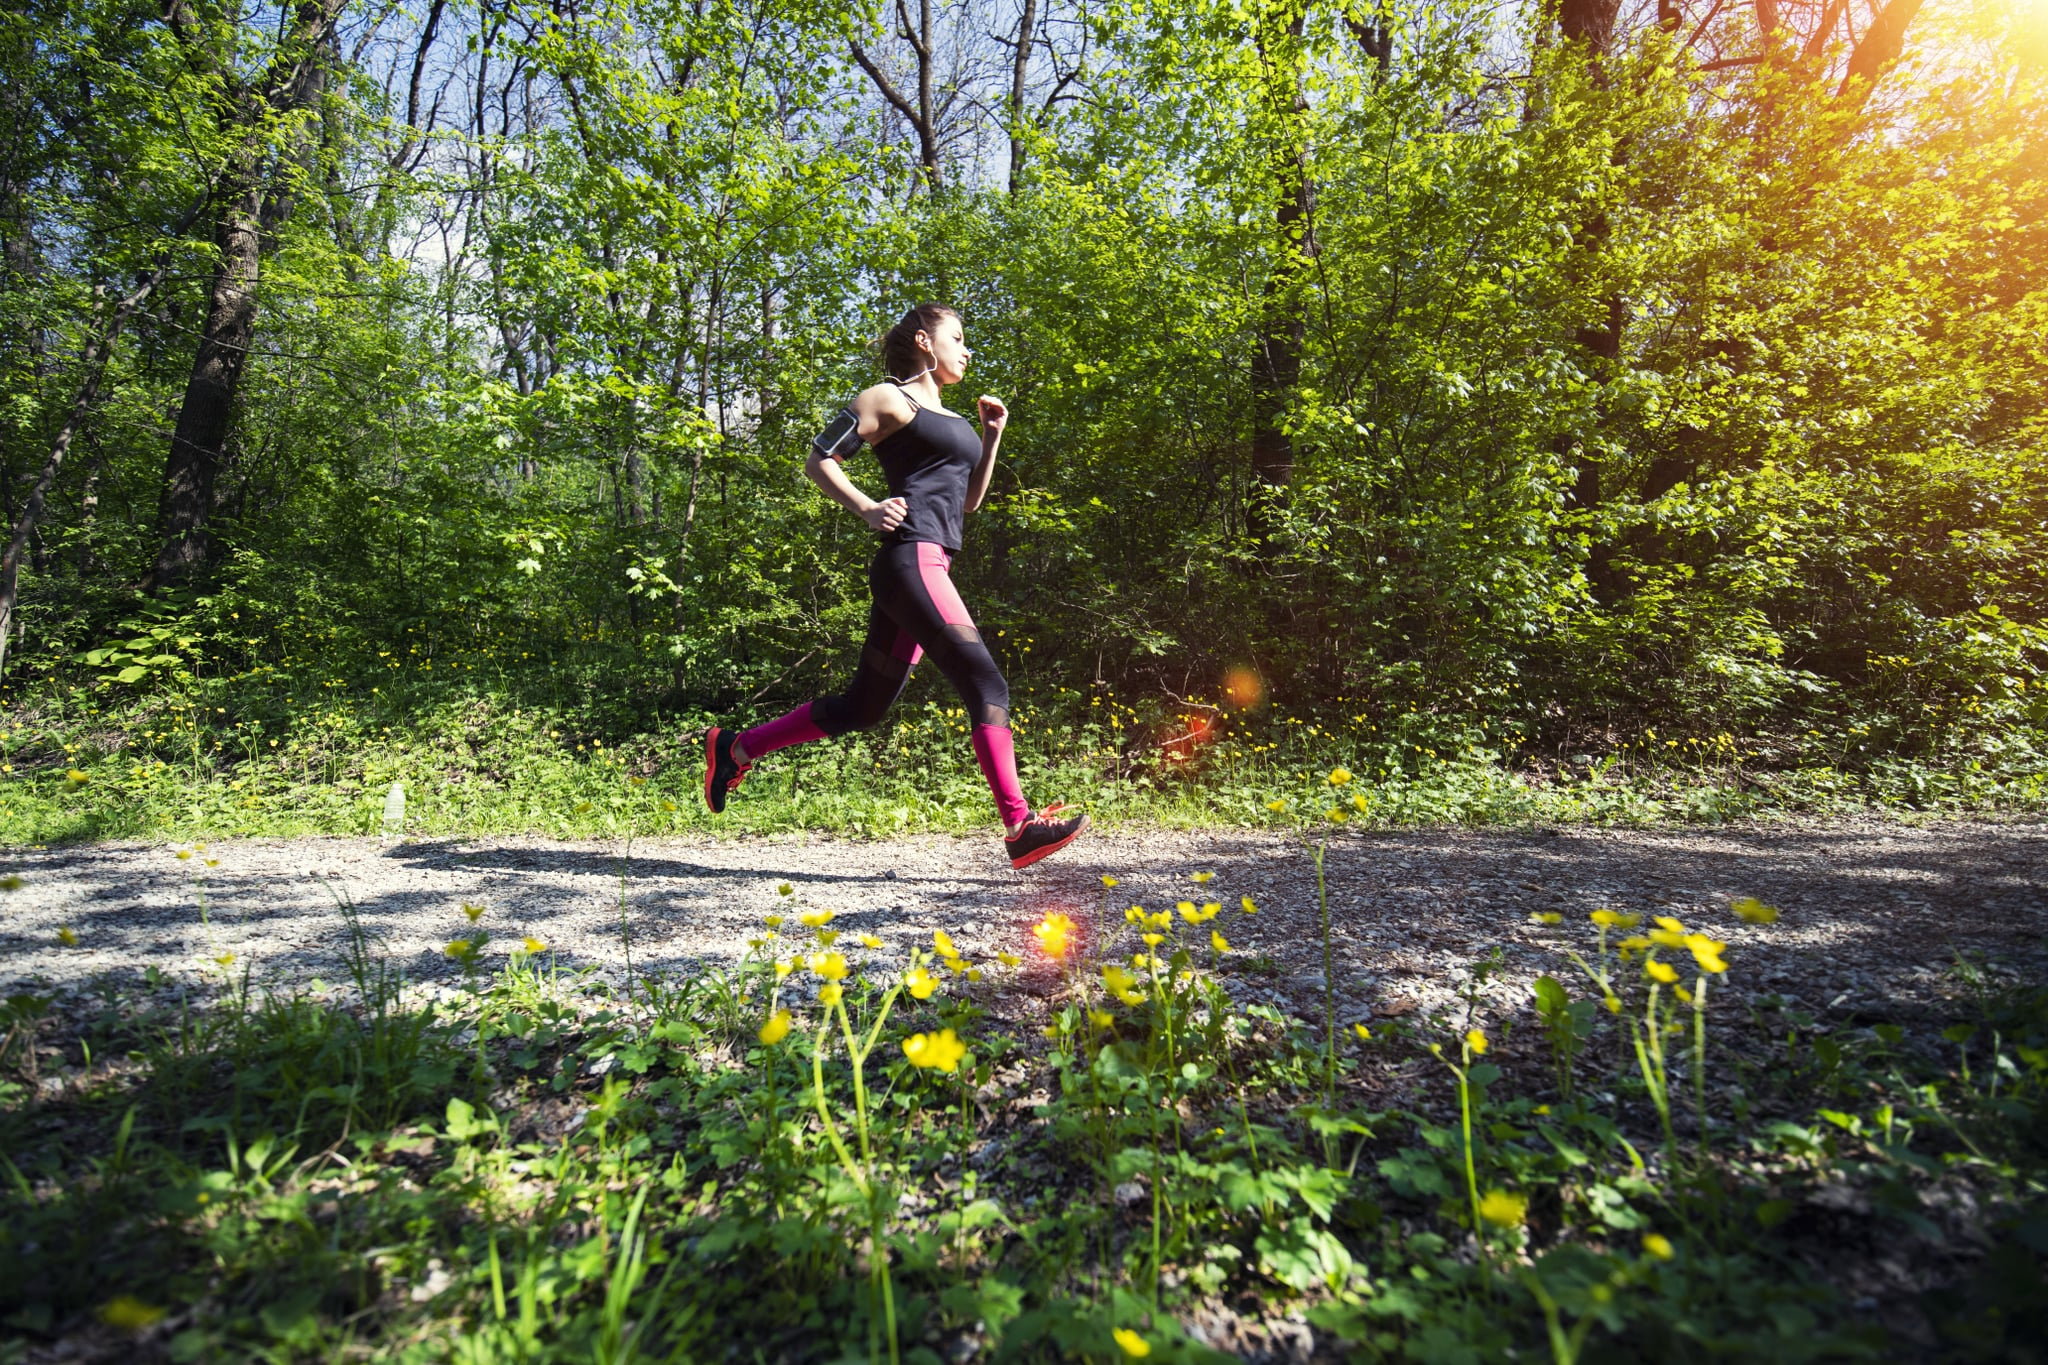 A young woman running in the forest footpath.